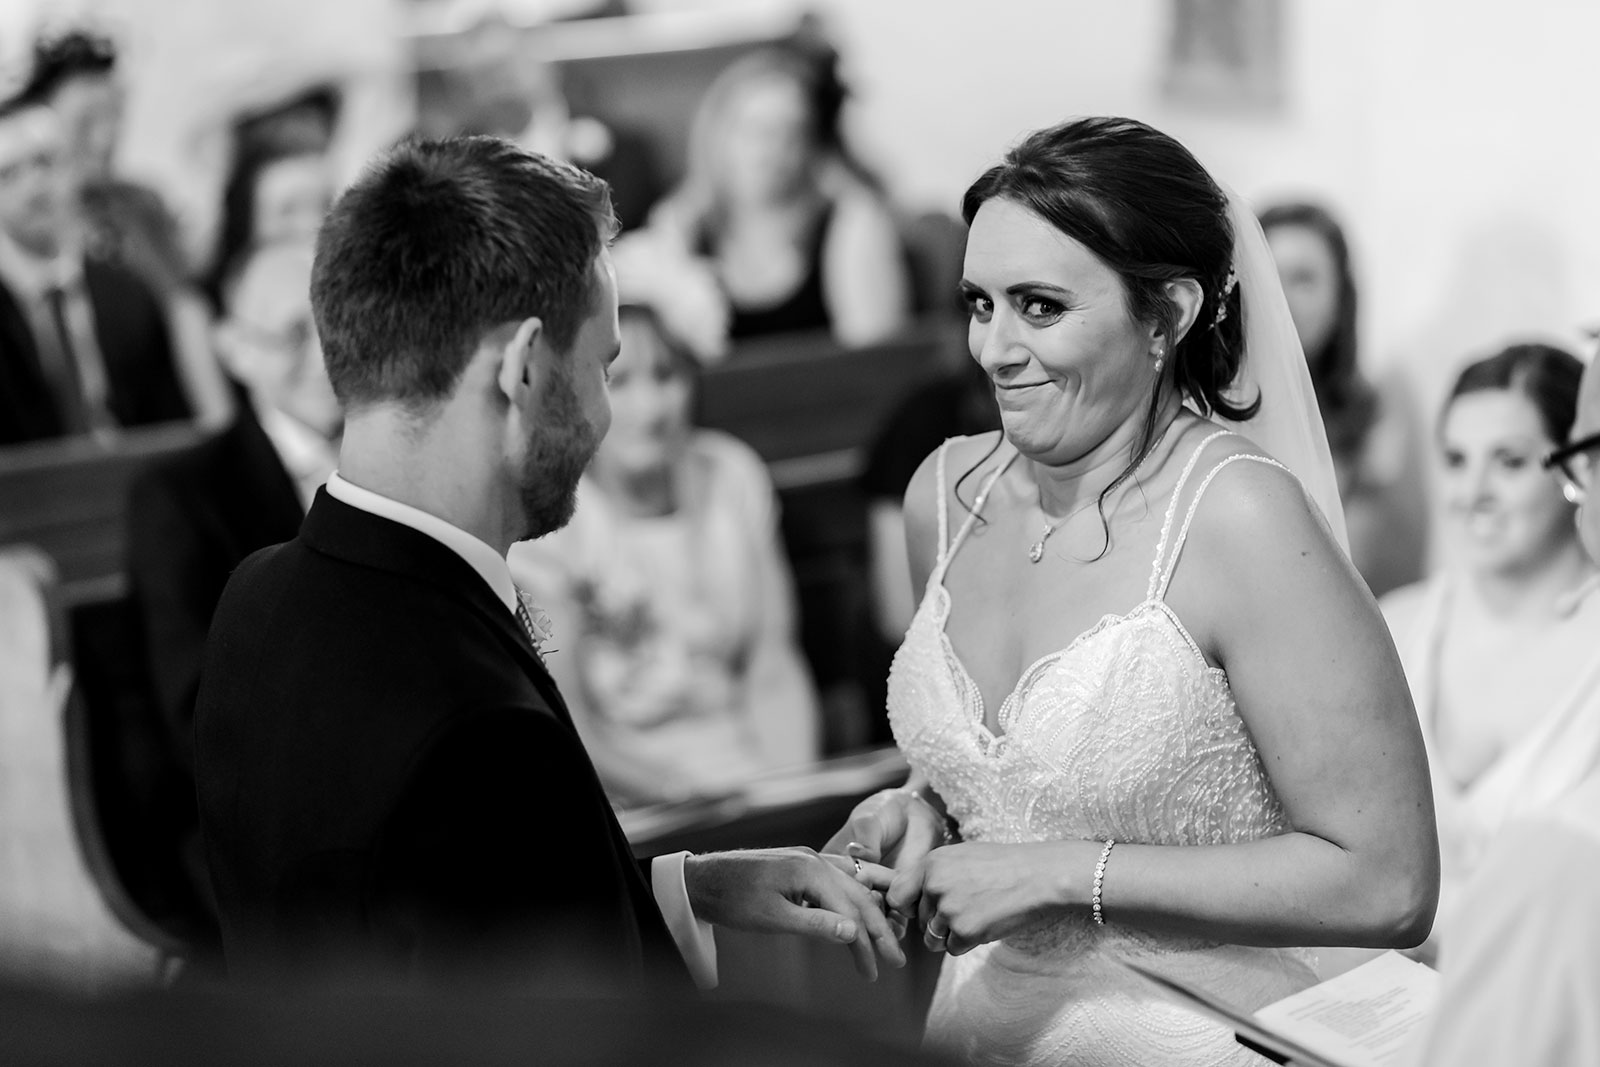 Getting married at St illtud's Church